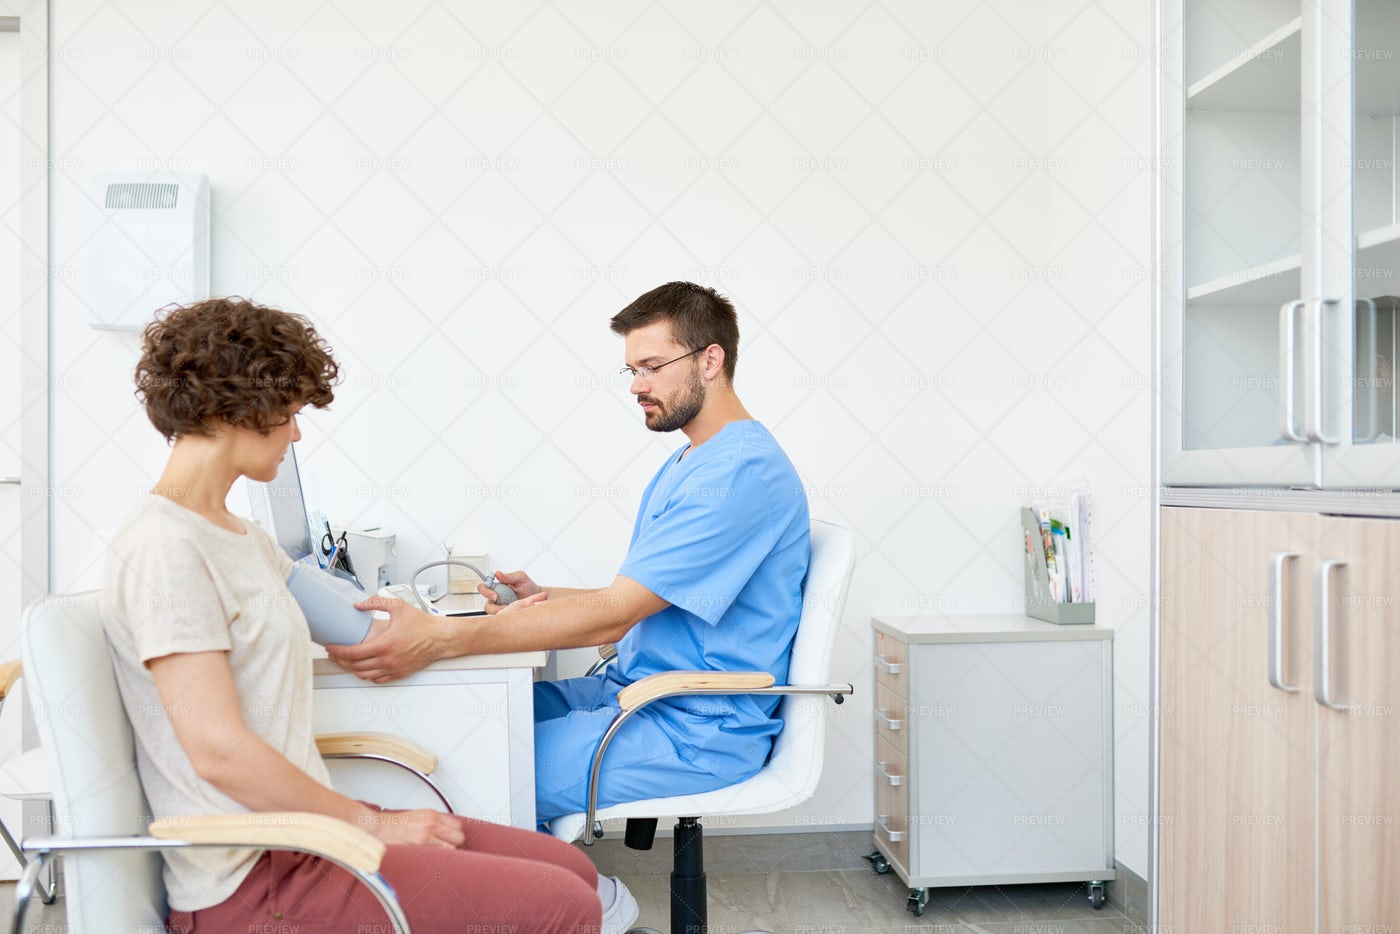 Doctor Measuring Blood Pressure On...: Stock Photos